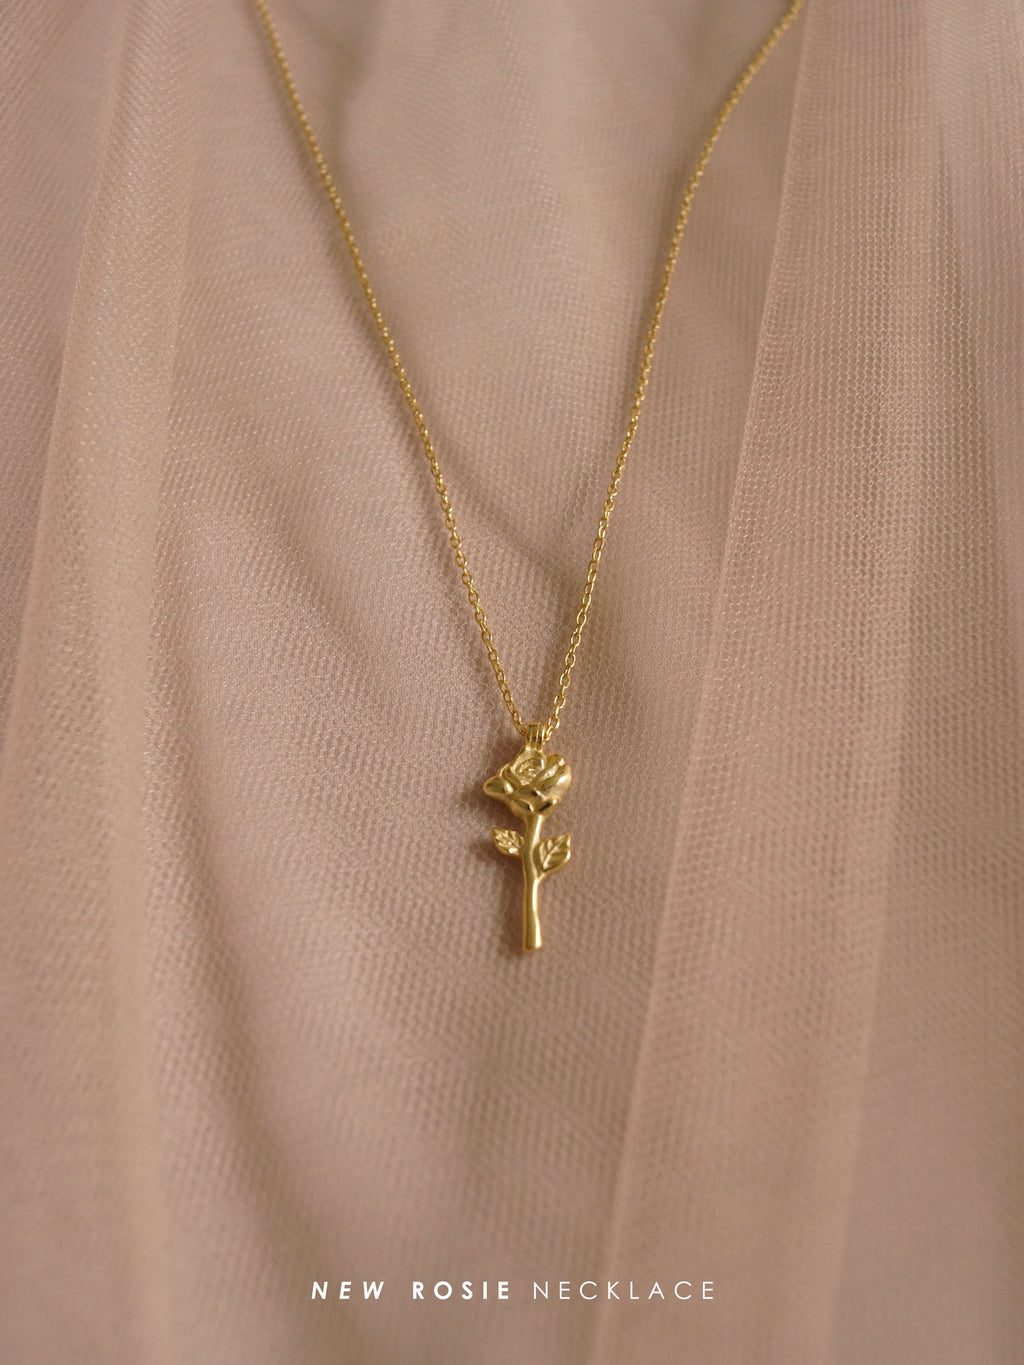 Rosie Necklace (18K Gold-plated 925 Sterling Silver)